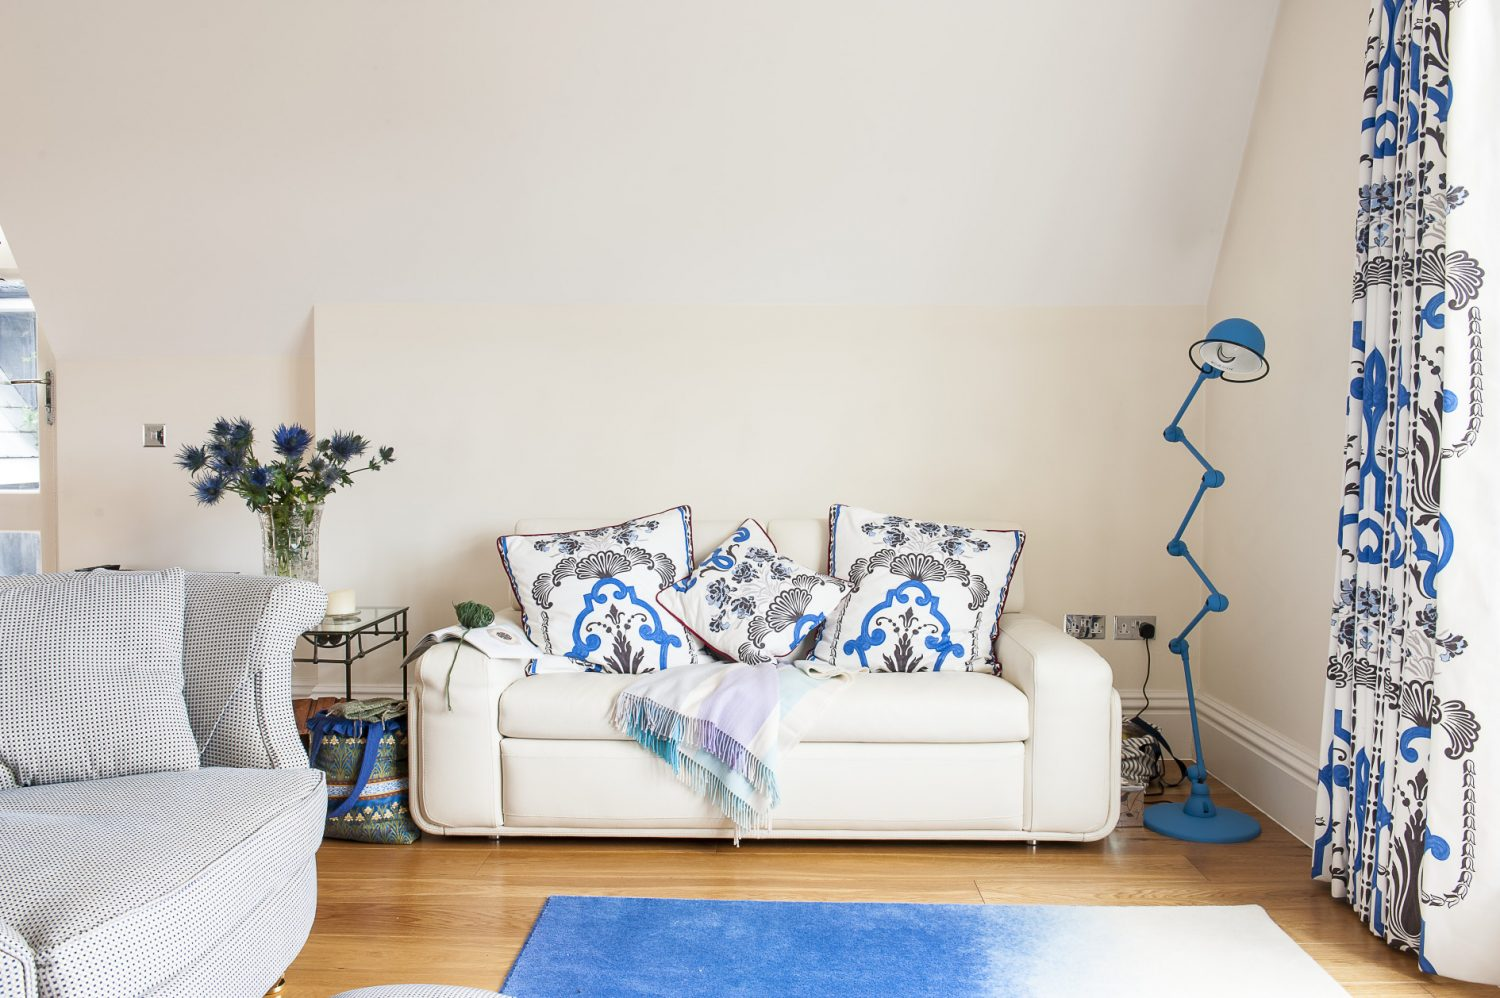 The bright white walls of the living room are highlighted with touches of blue